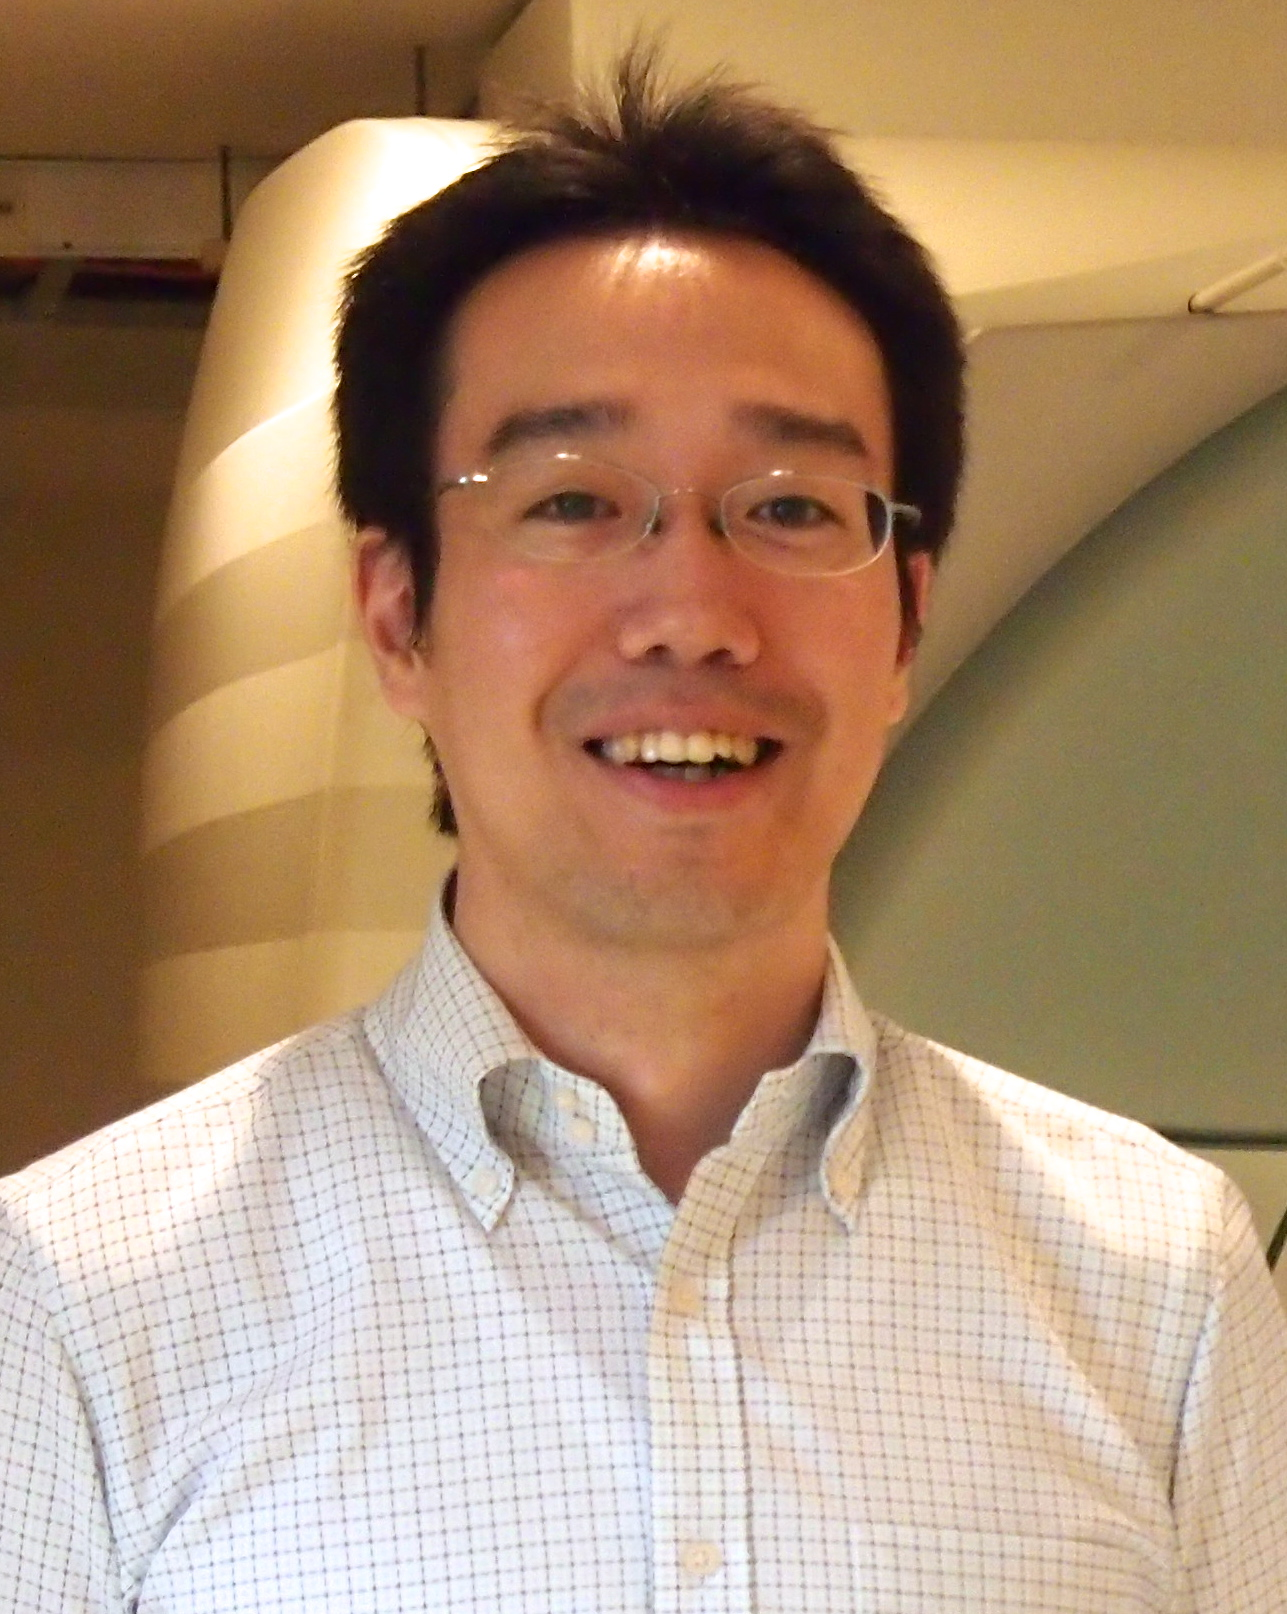 Assoc. prof. Abe received Young Investigator Award at the 15th Congress of Japan Human Brain Mapping Society